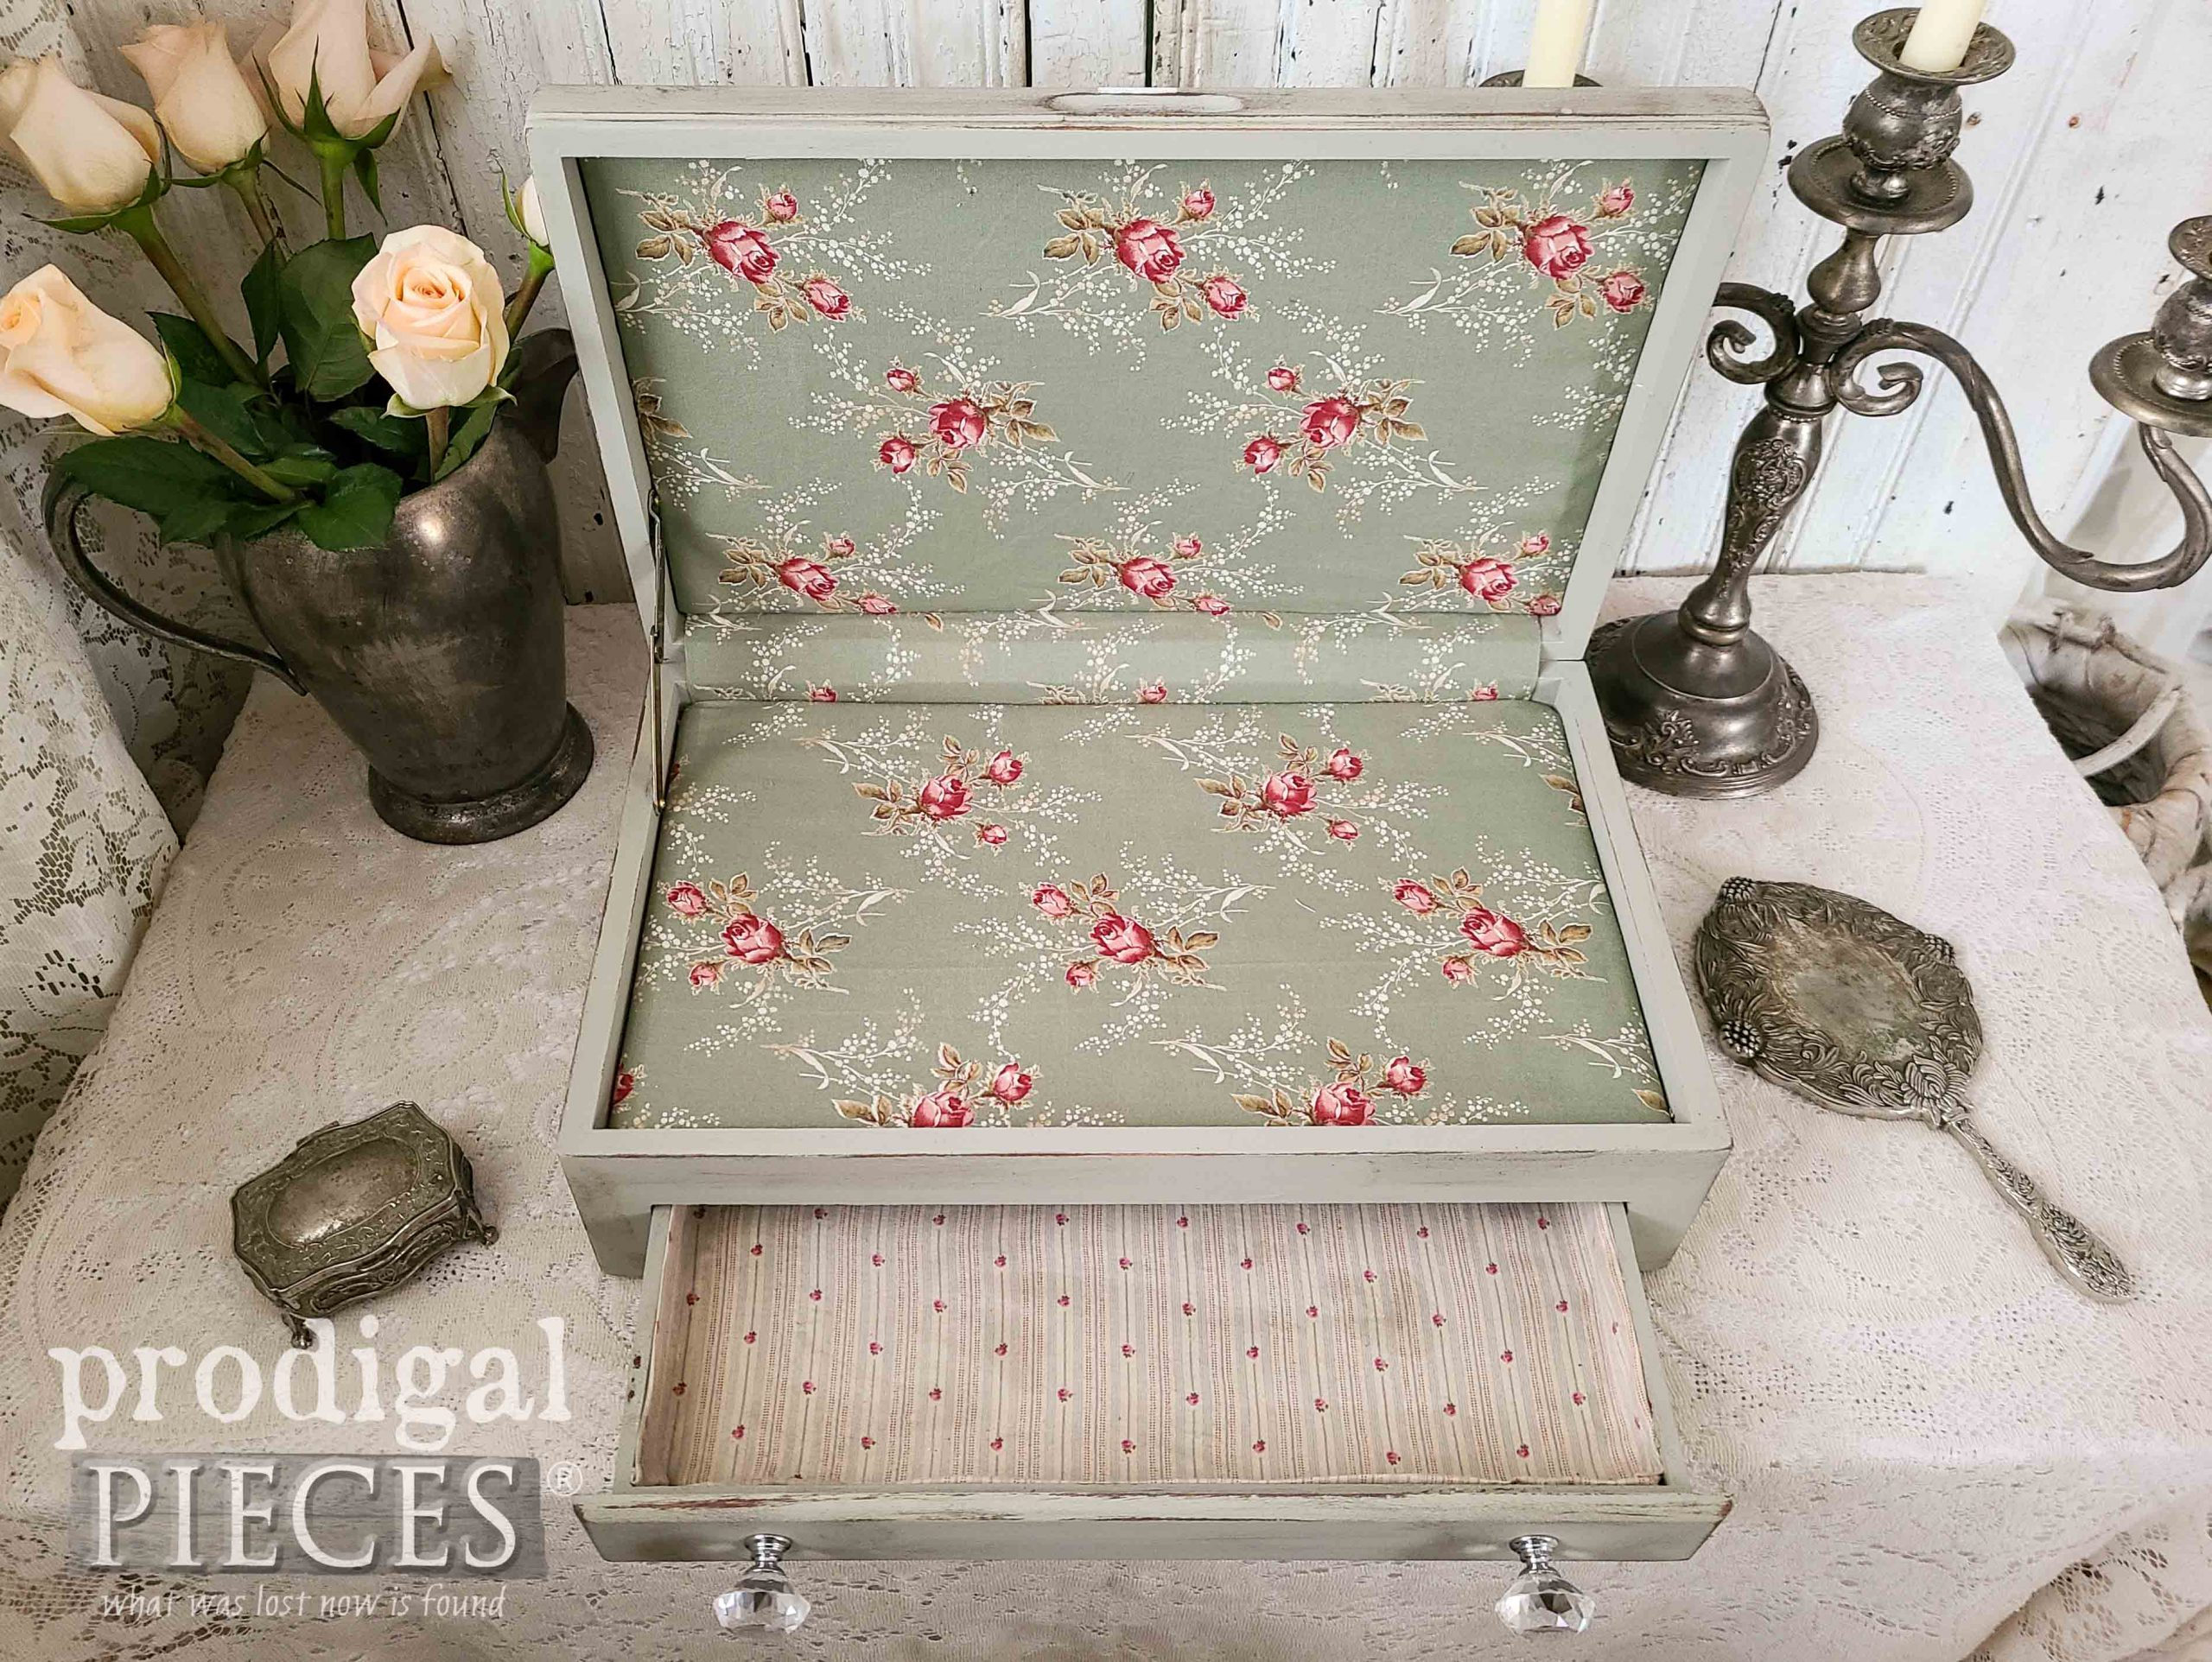 Fabric Lined Storage Box for Home Decor from Upcycled Silverware Chest by Larissa of Prodigal Pieces | prodigalpieces.com #prodigalpieces #diy #home #storage